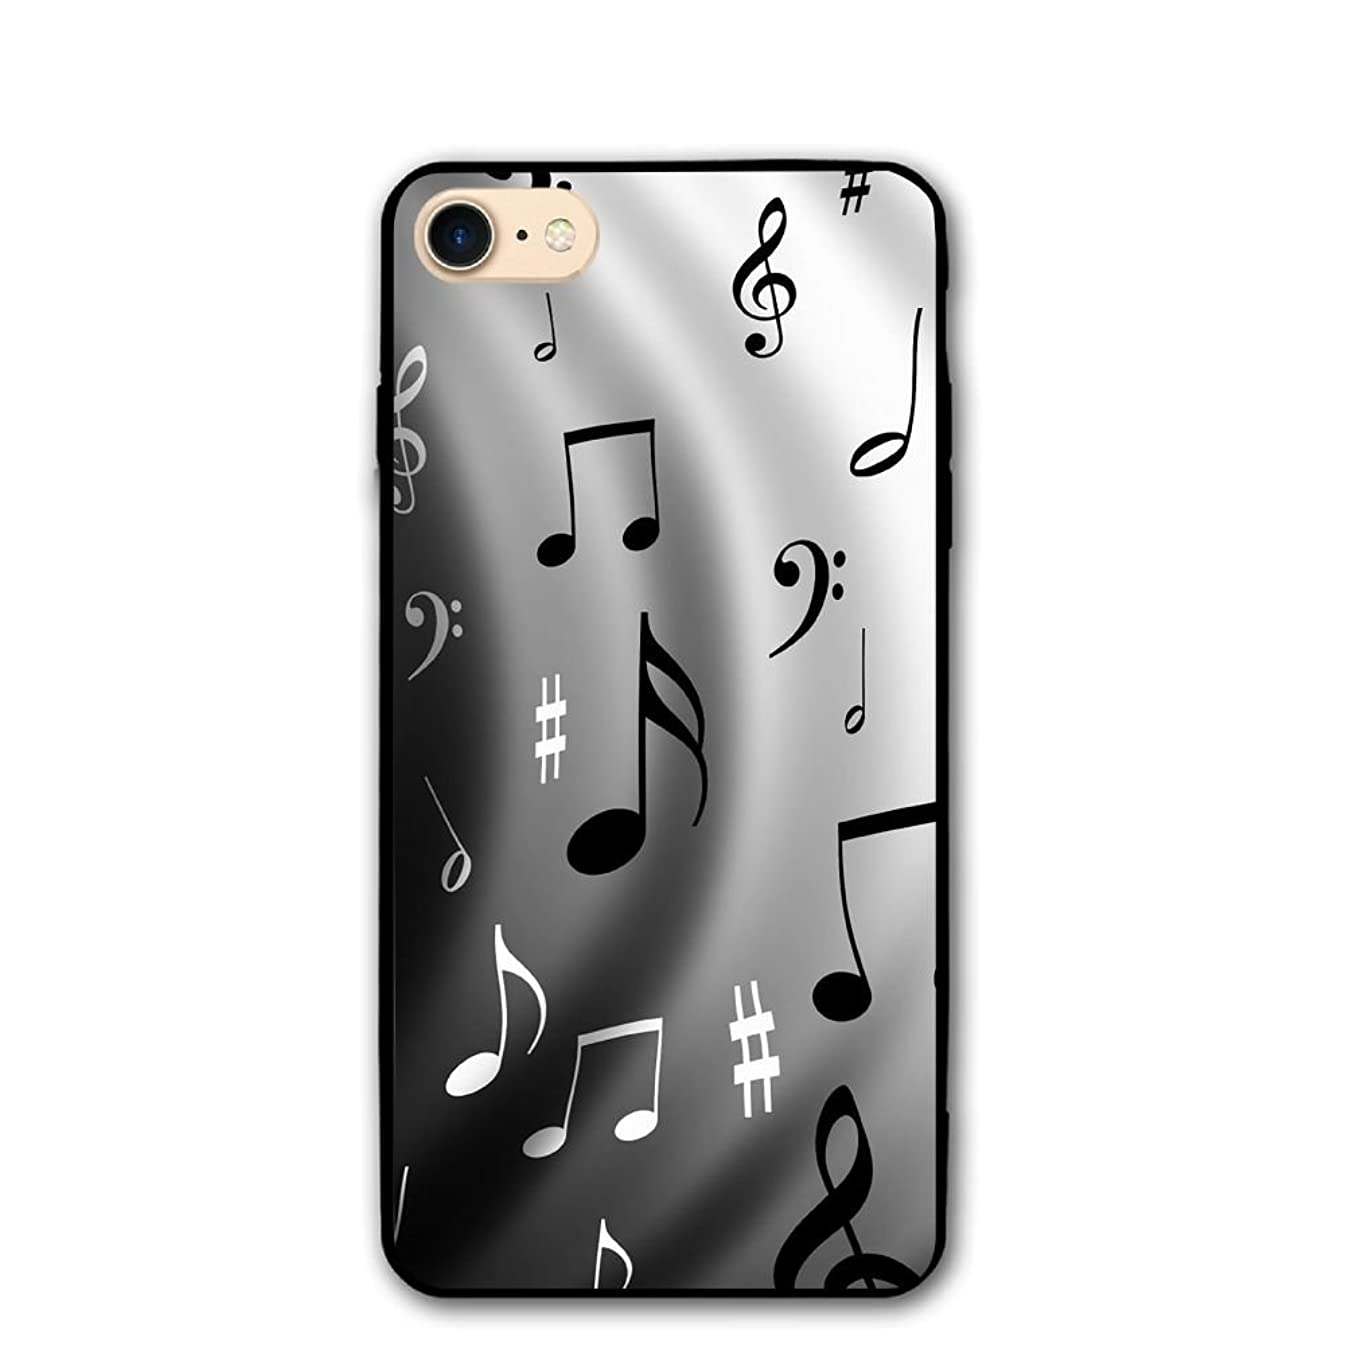 4.7 Inch iPhone 8 Case Music Notes Anti-Scratch Shock Proof Hard PC Protective Case Cover